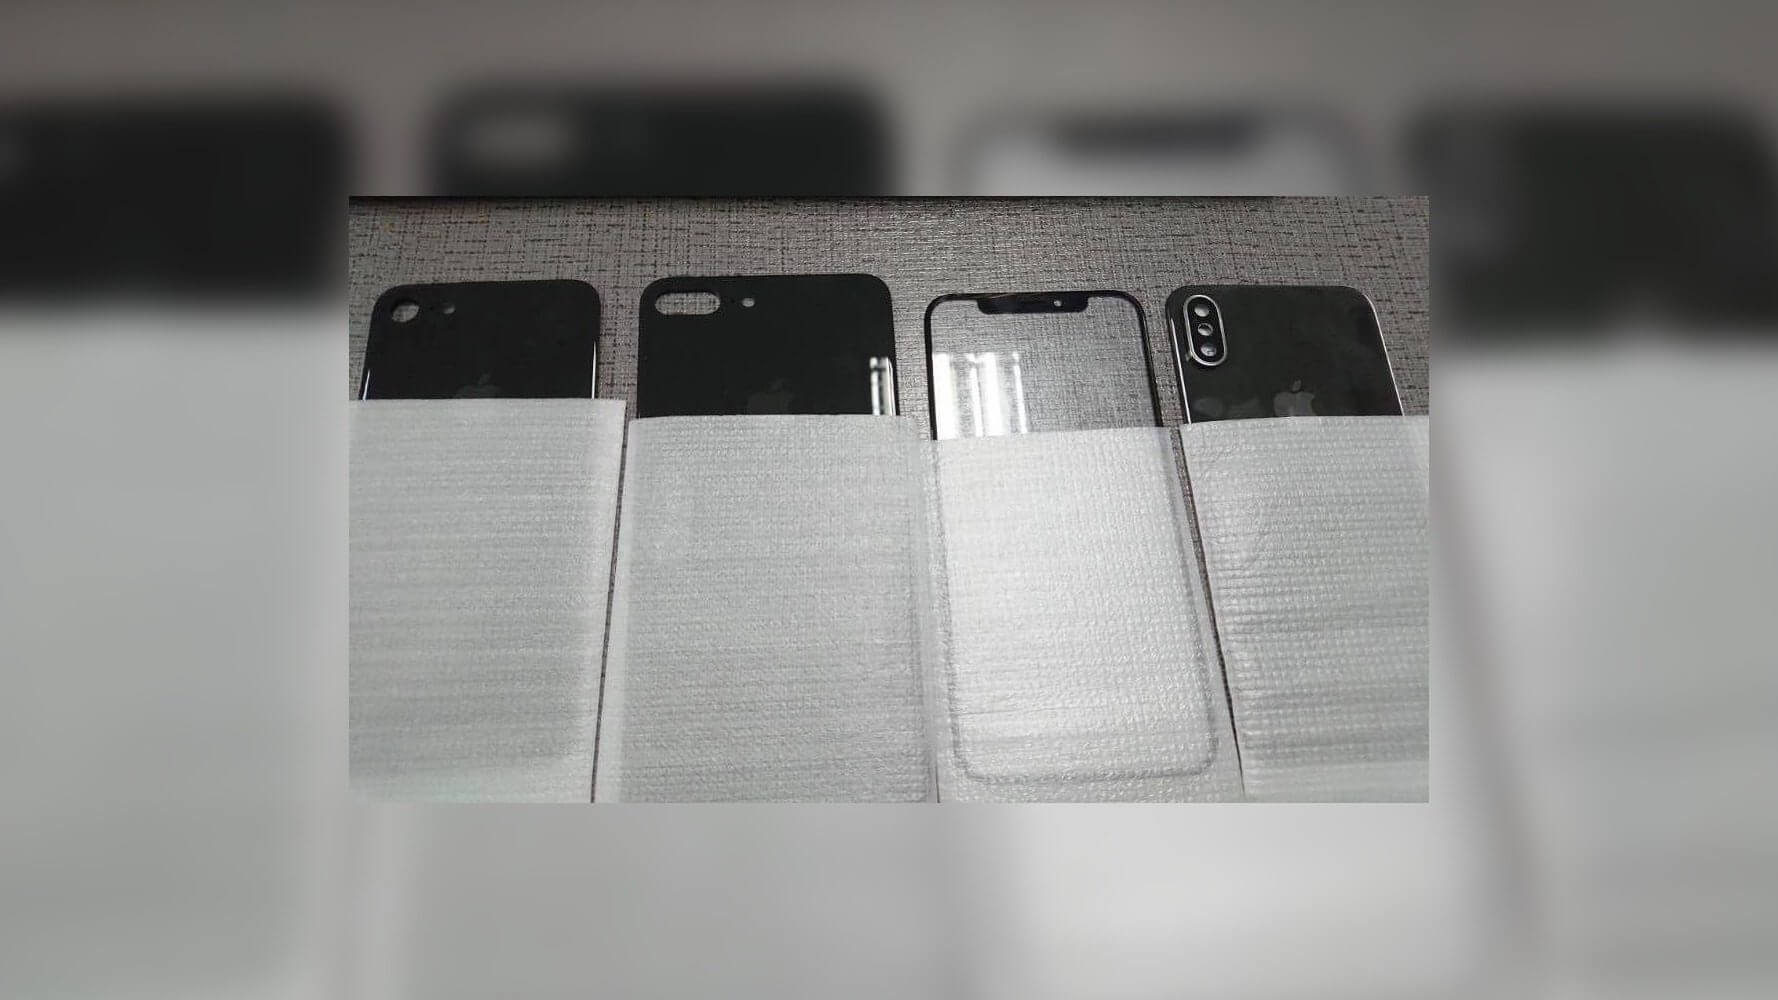 Alleged iphone 8 front rear glass panels1